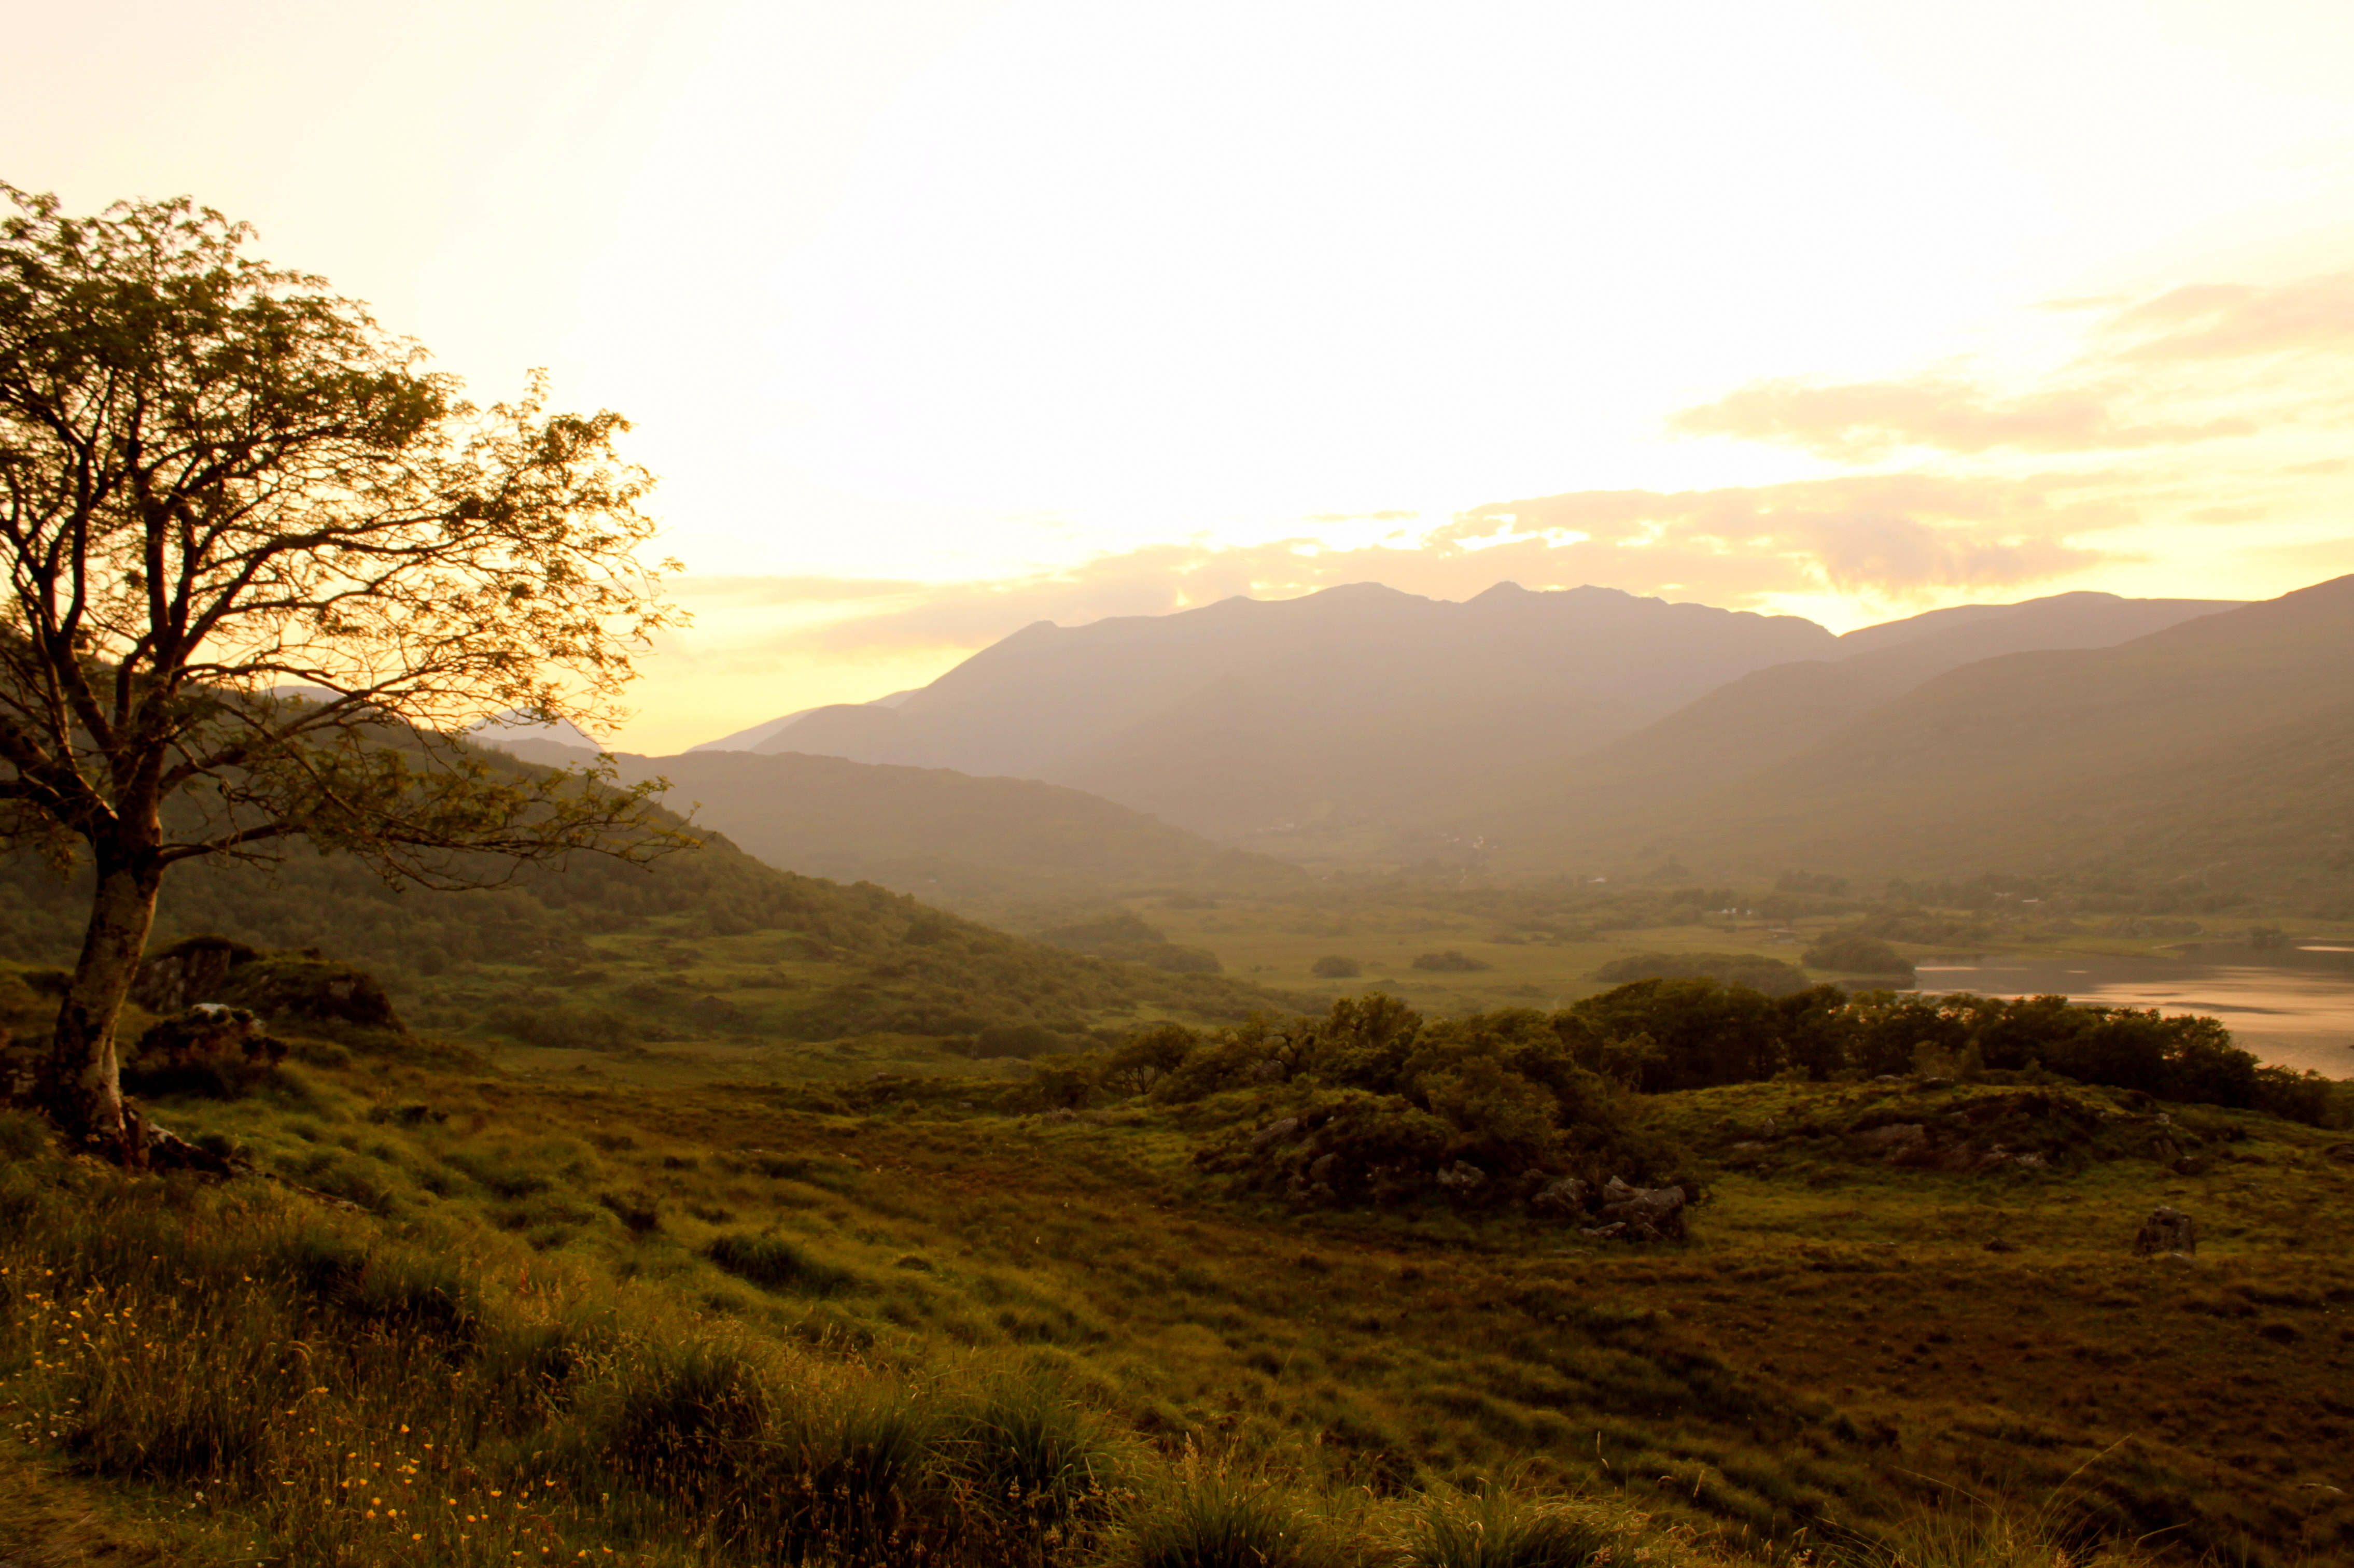 Ladies View is a scenic point along the southern portion of the Ring of Kerry, in Killarney National Park. It was here that Queen Victoria had her breath taken away from the view below in 1861